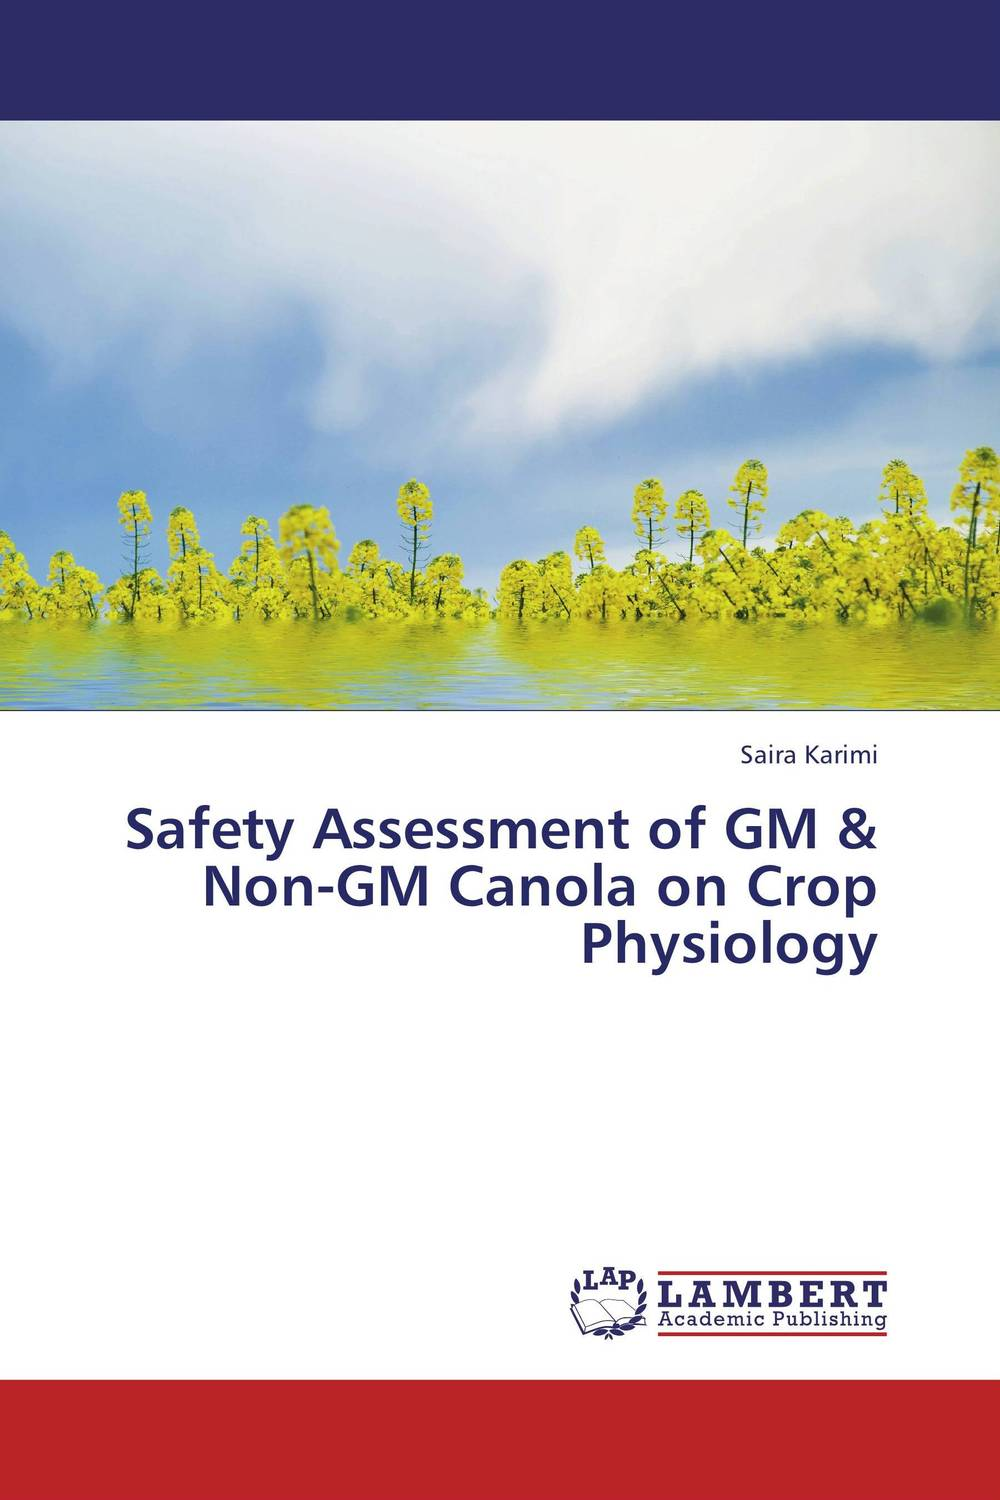 Safety Assessment of GM & Non-GM Canola on Crop Physiology k mukerji mukerji assessment of delinquency – an examinati on of personality